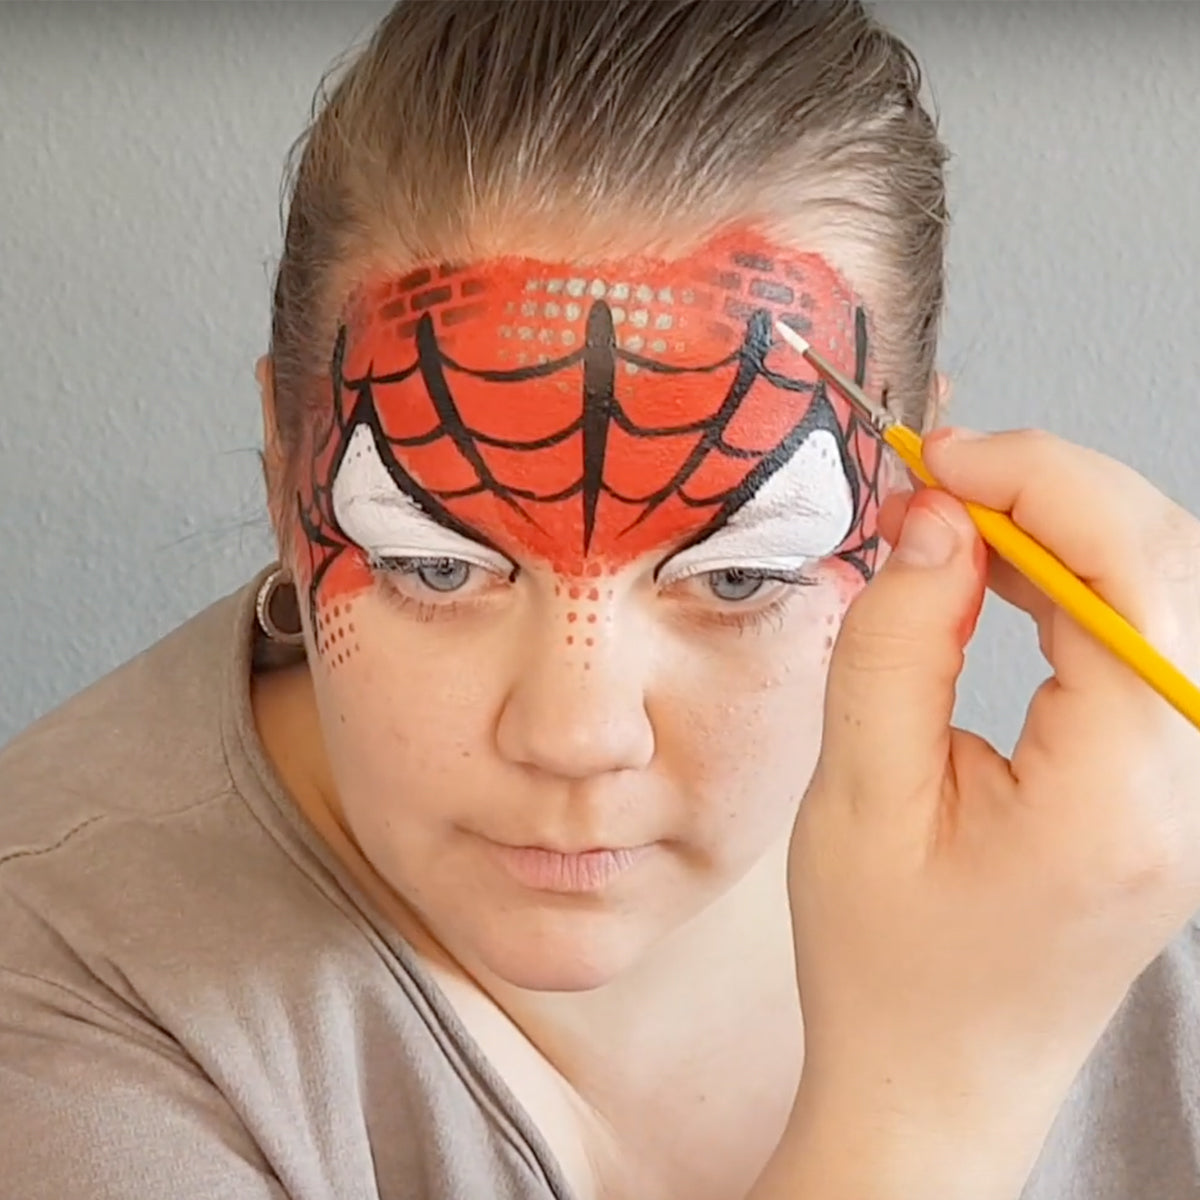 All About Online Face Painting Groups & Communities